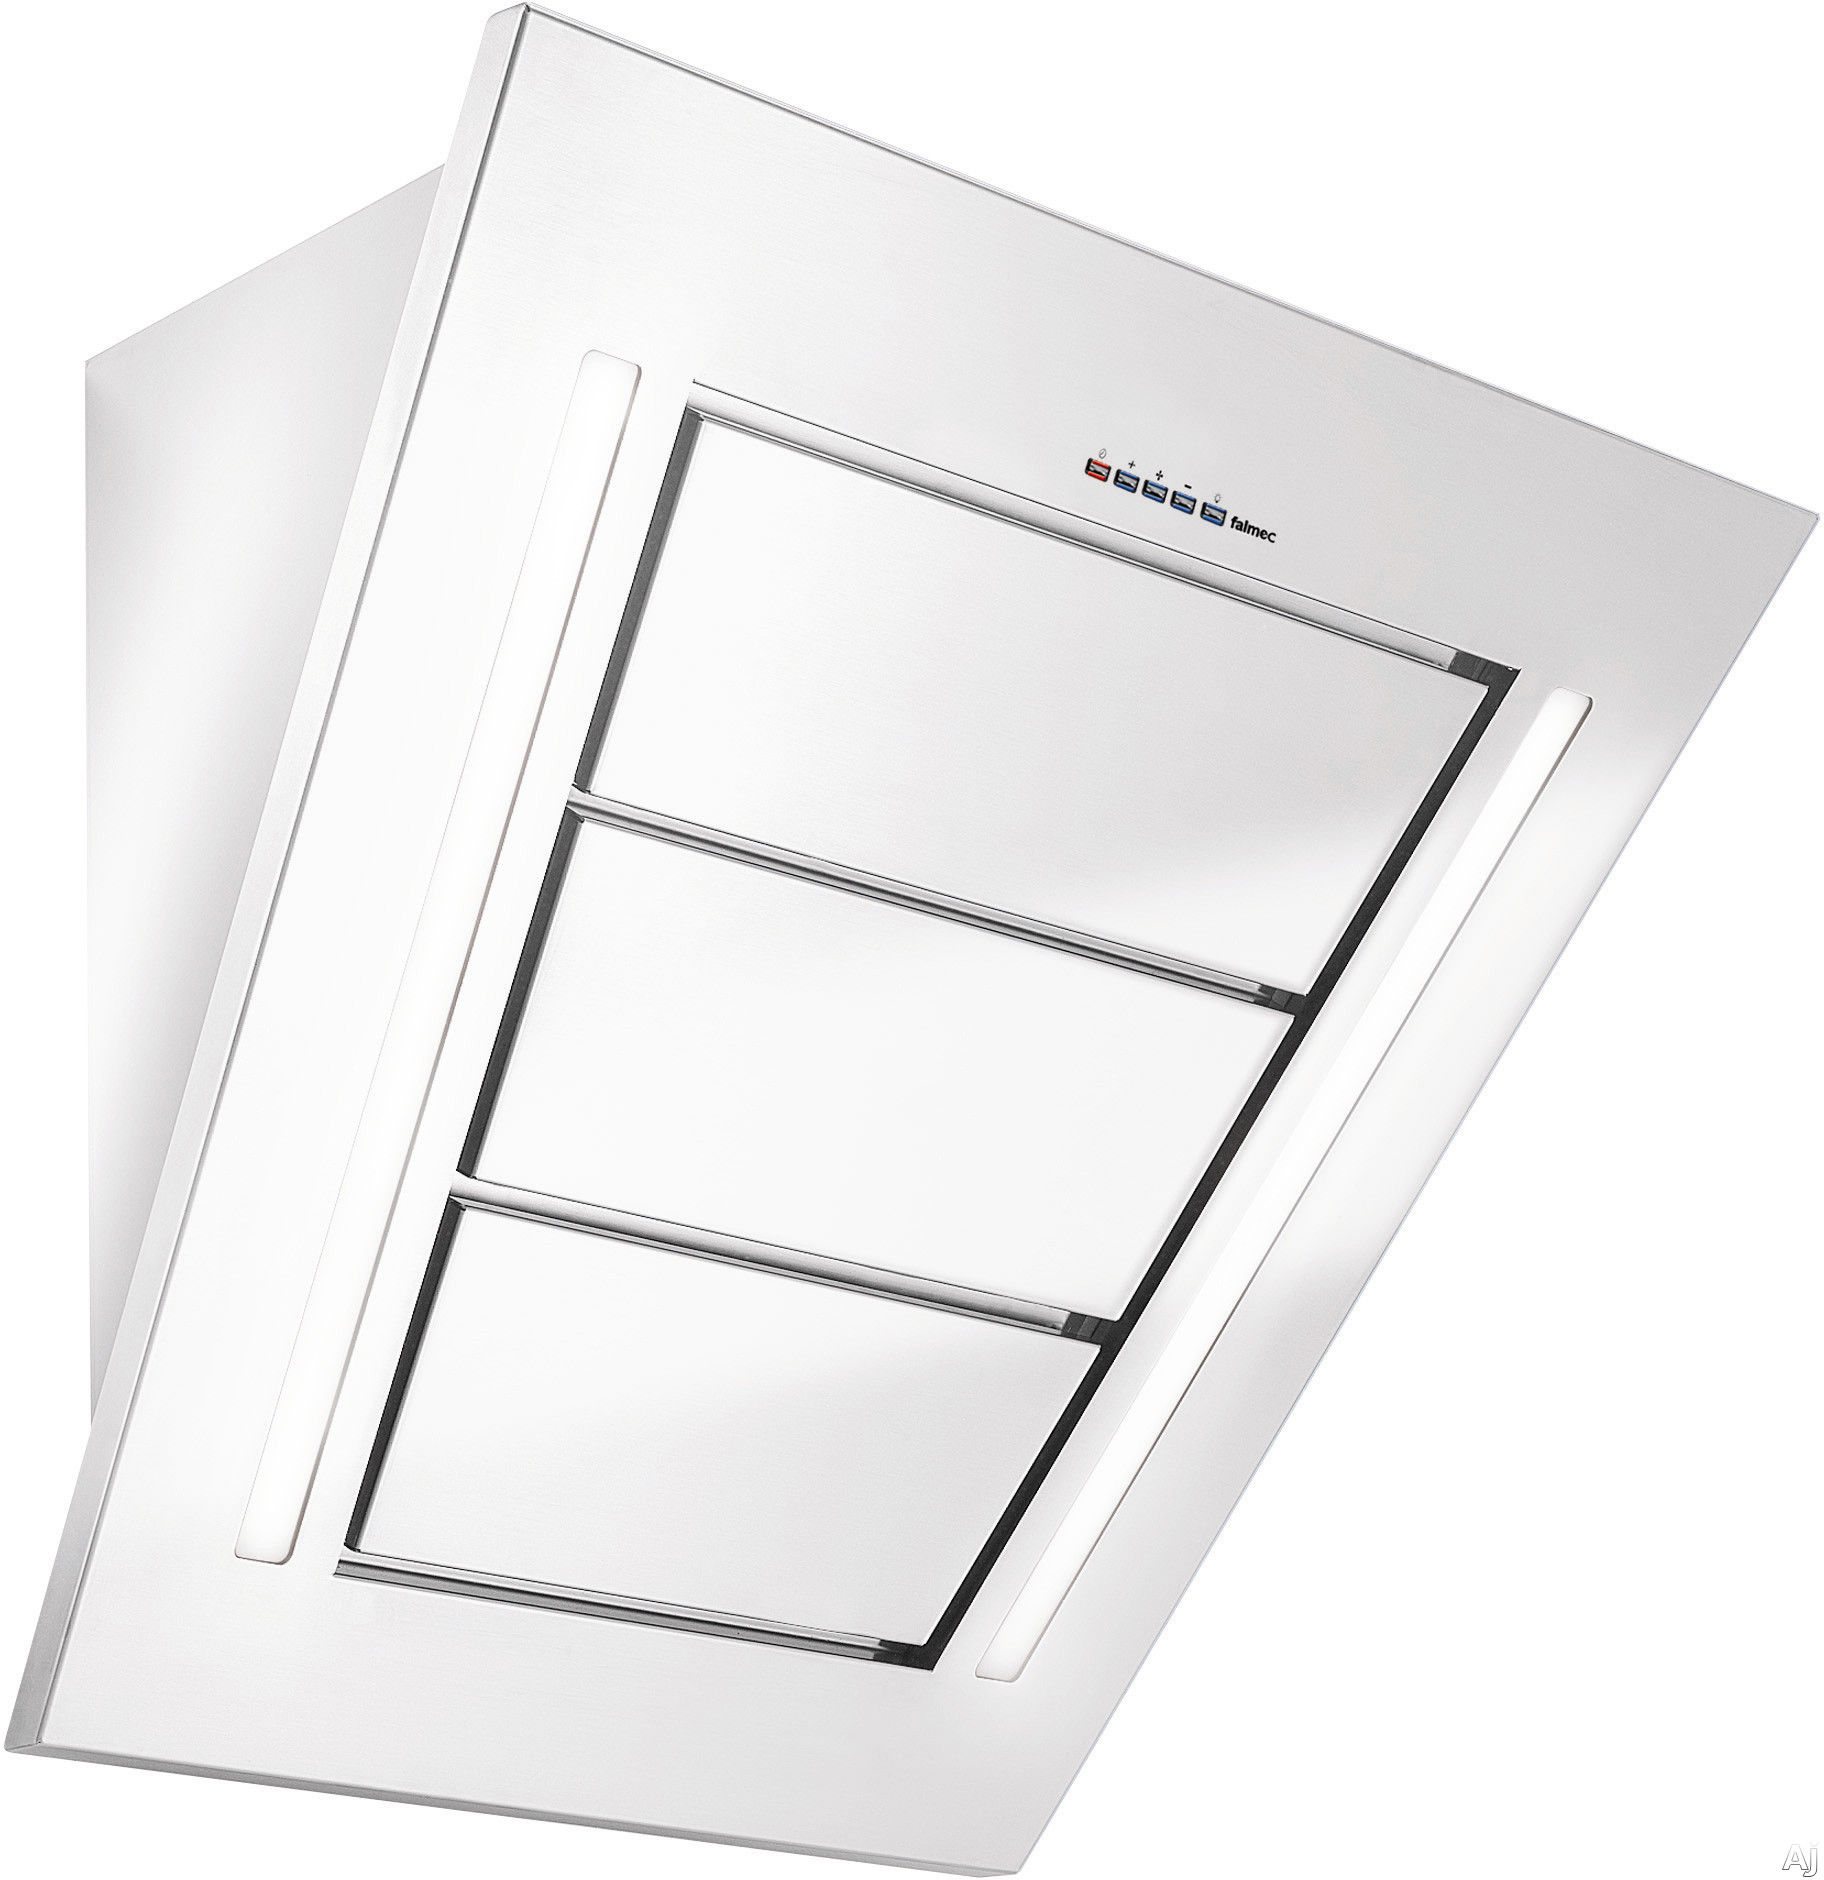 Futuro Futuro Diamond Series WL36DIAMOND 36 Inch Wall Mount Range Hood with 940 CFM Internal Blower, 4 Speed Electronic Controls, 2 Fluorescent Lights and Magnetic Perimeter Suction Filter System: Stainless Steel WL36DIAMOND